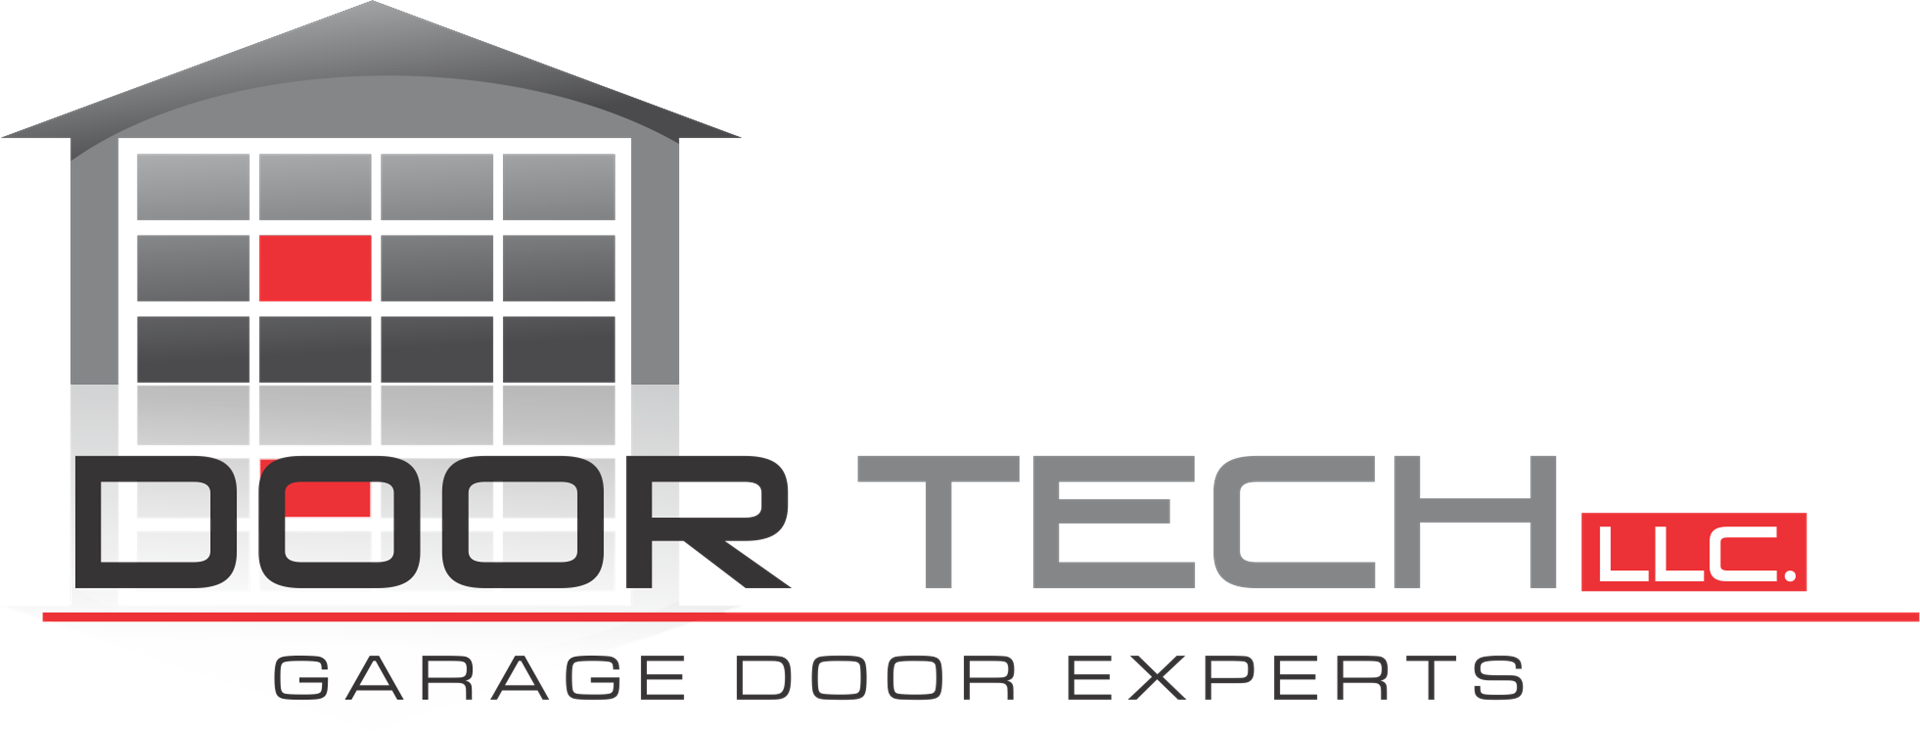 Steps a professional perform to repair e writerscafe for Garage service professionals